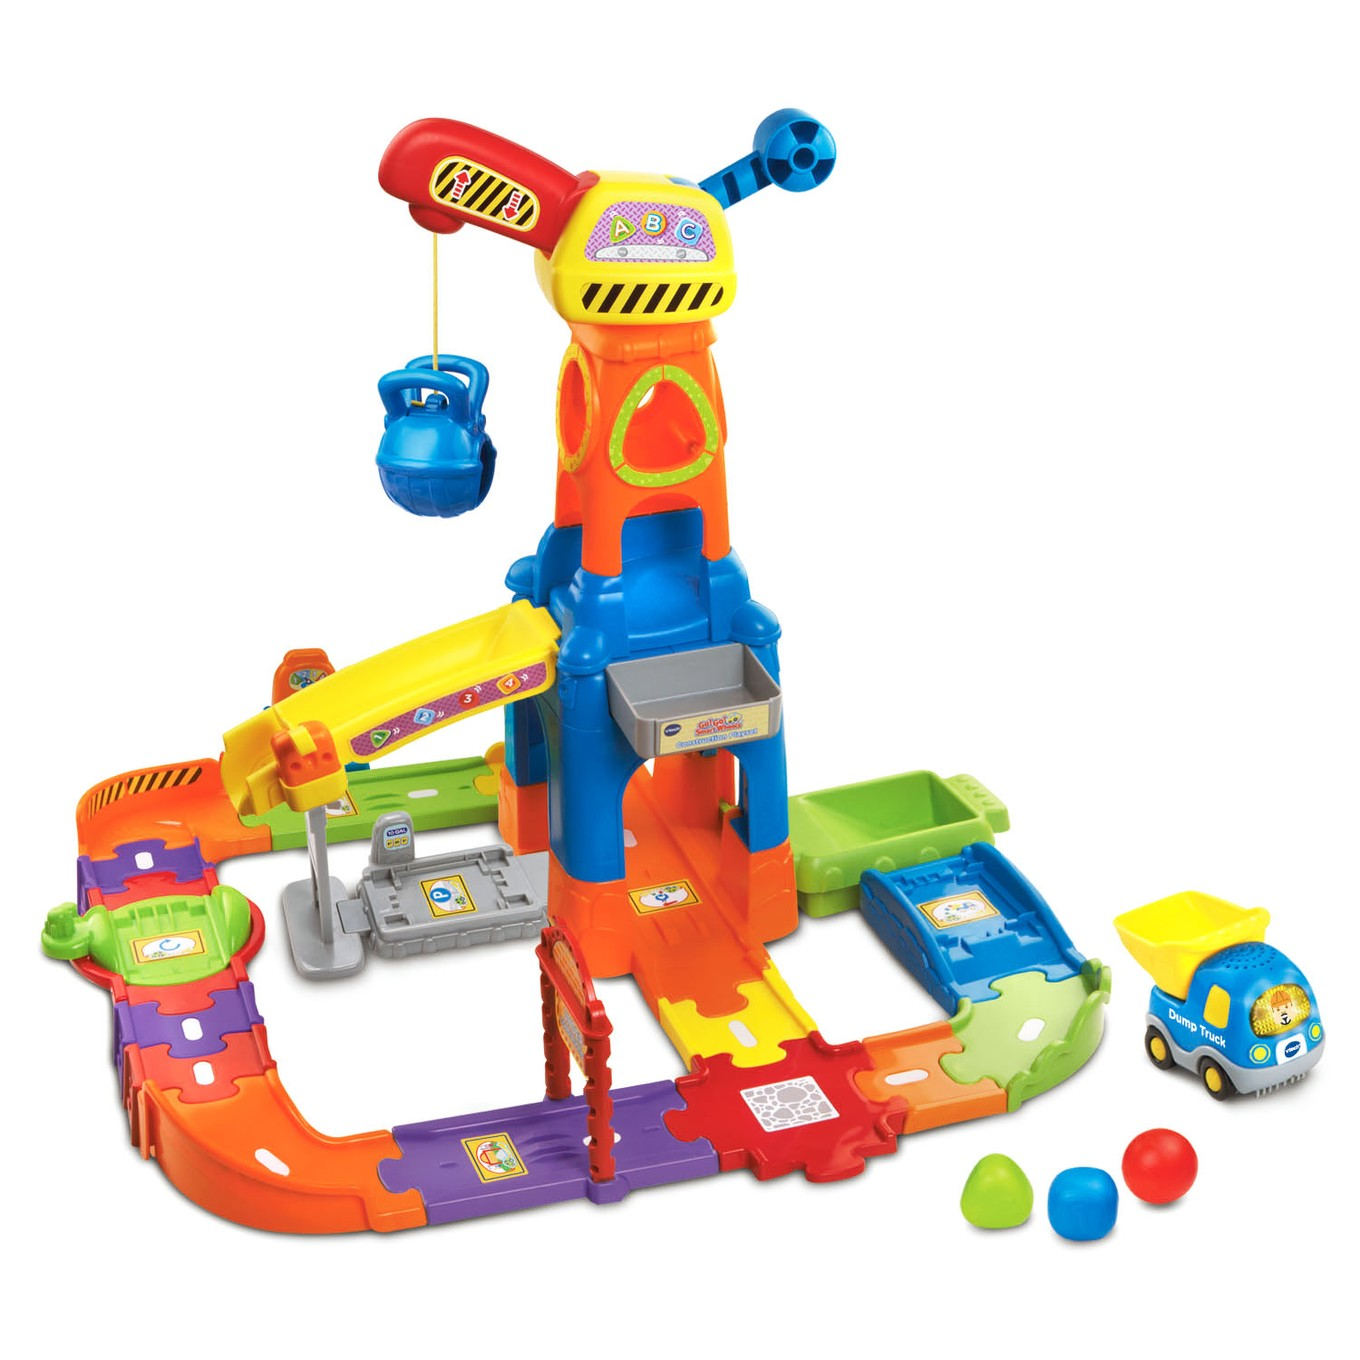 Go Go Smart Wheels 174 Construction Playset І Vtechkids Com